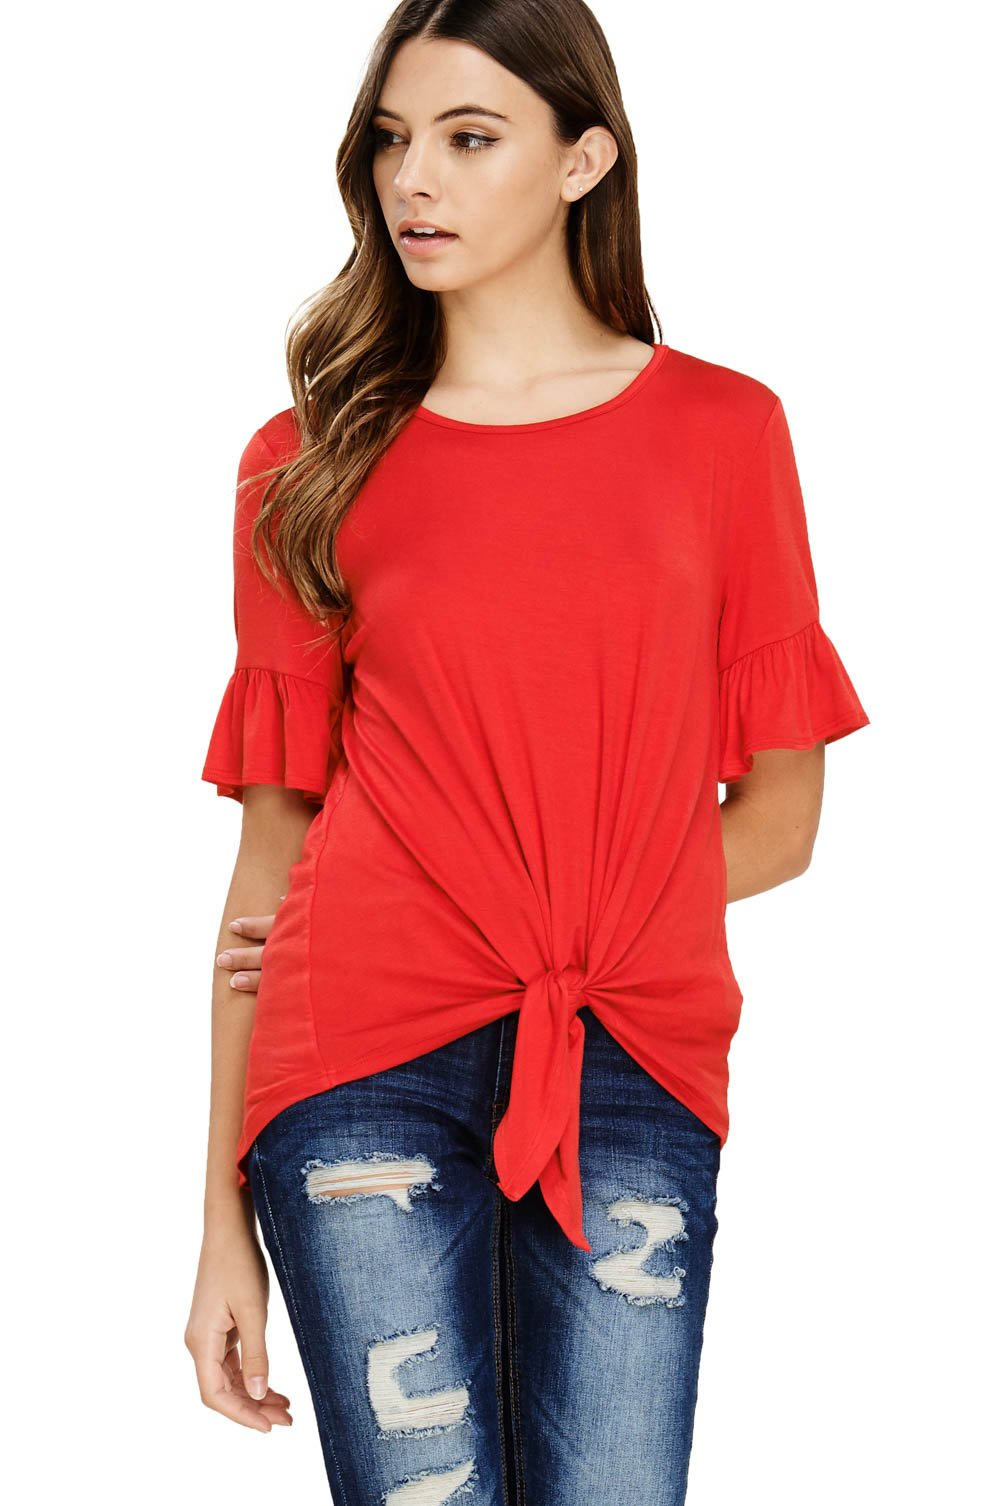 Annabelle Women's Casual Short Sleeve Knot Tie Front Loose fit Tee T-Shirt Blouses Poppy Red Medium T1200